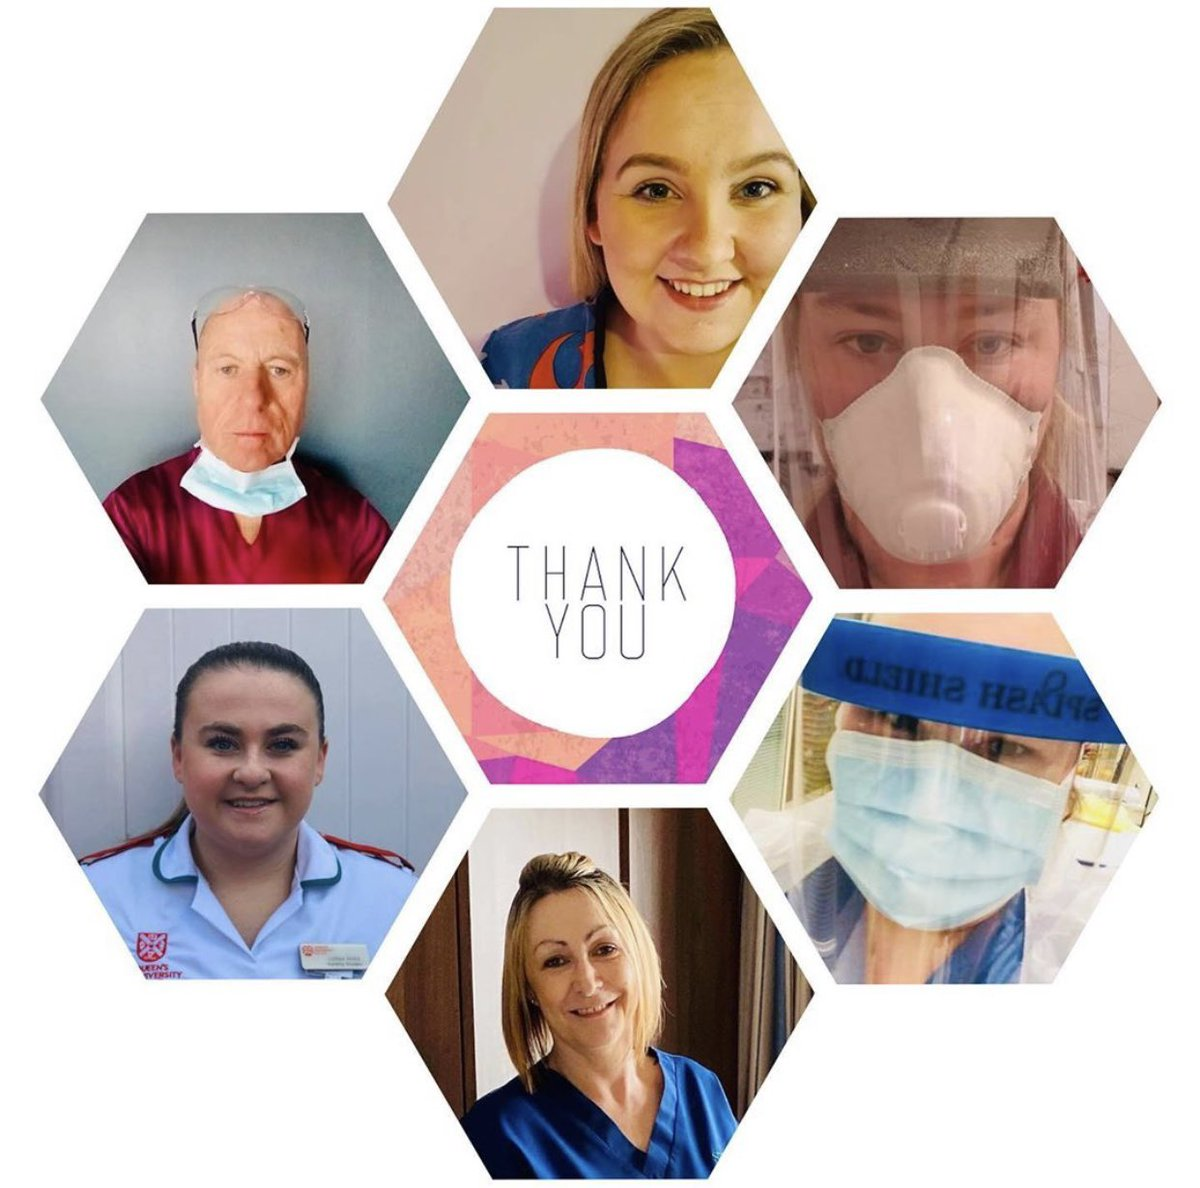 A huge thank you to our CFAV's working on the frontline to help fight Covid-19.   Thank you for your continued dedication and selfless commitment 👏🏼   #Heroes #Thankyou #NHS #StatSafe #CadetForceResilience https://t.co/rDiTgOu1WJ